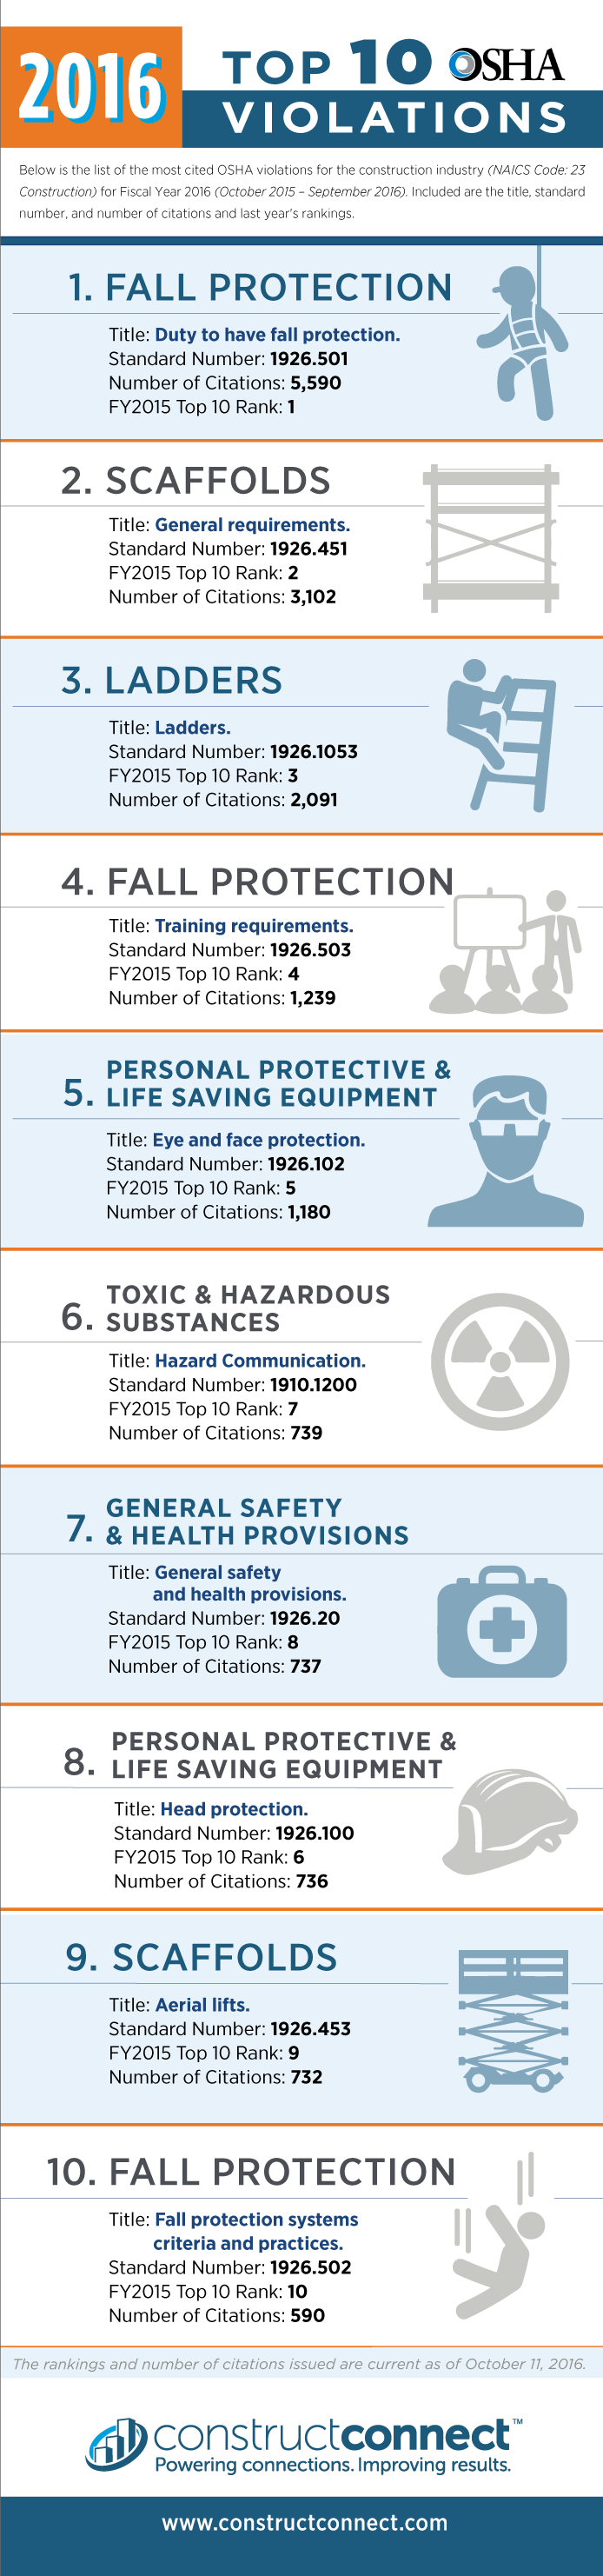 OSHA's Top 10 Most Cited Standards for Construction